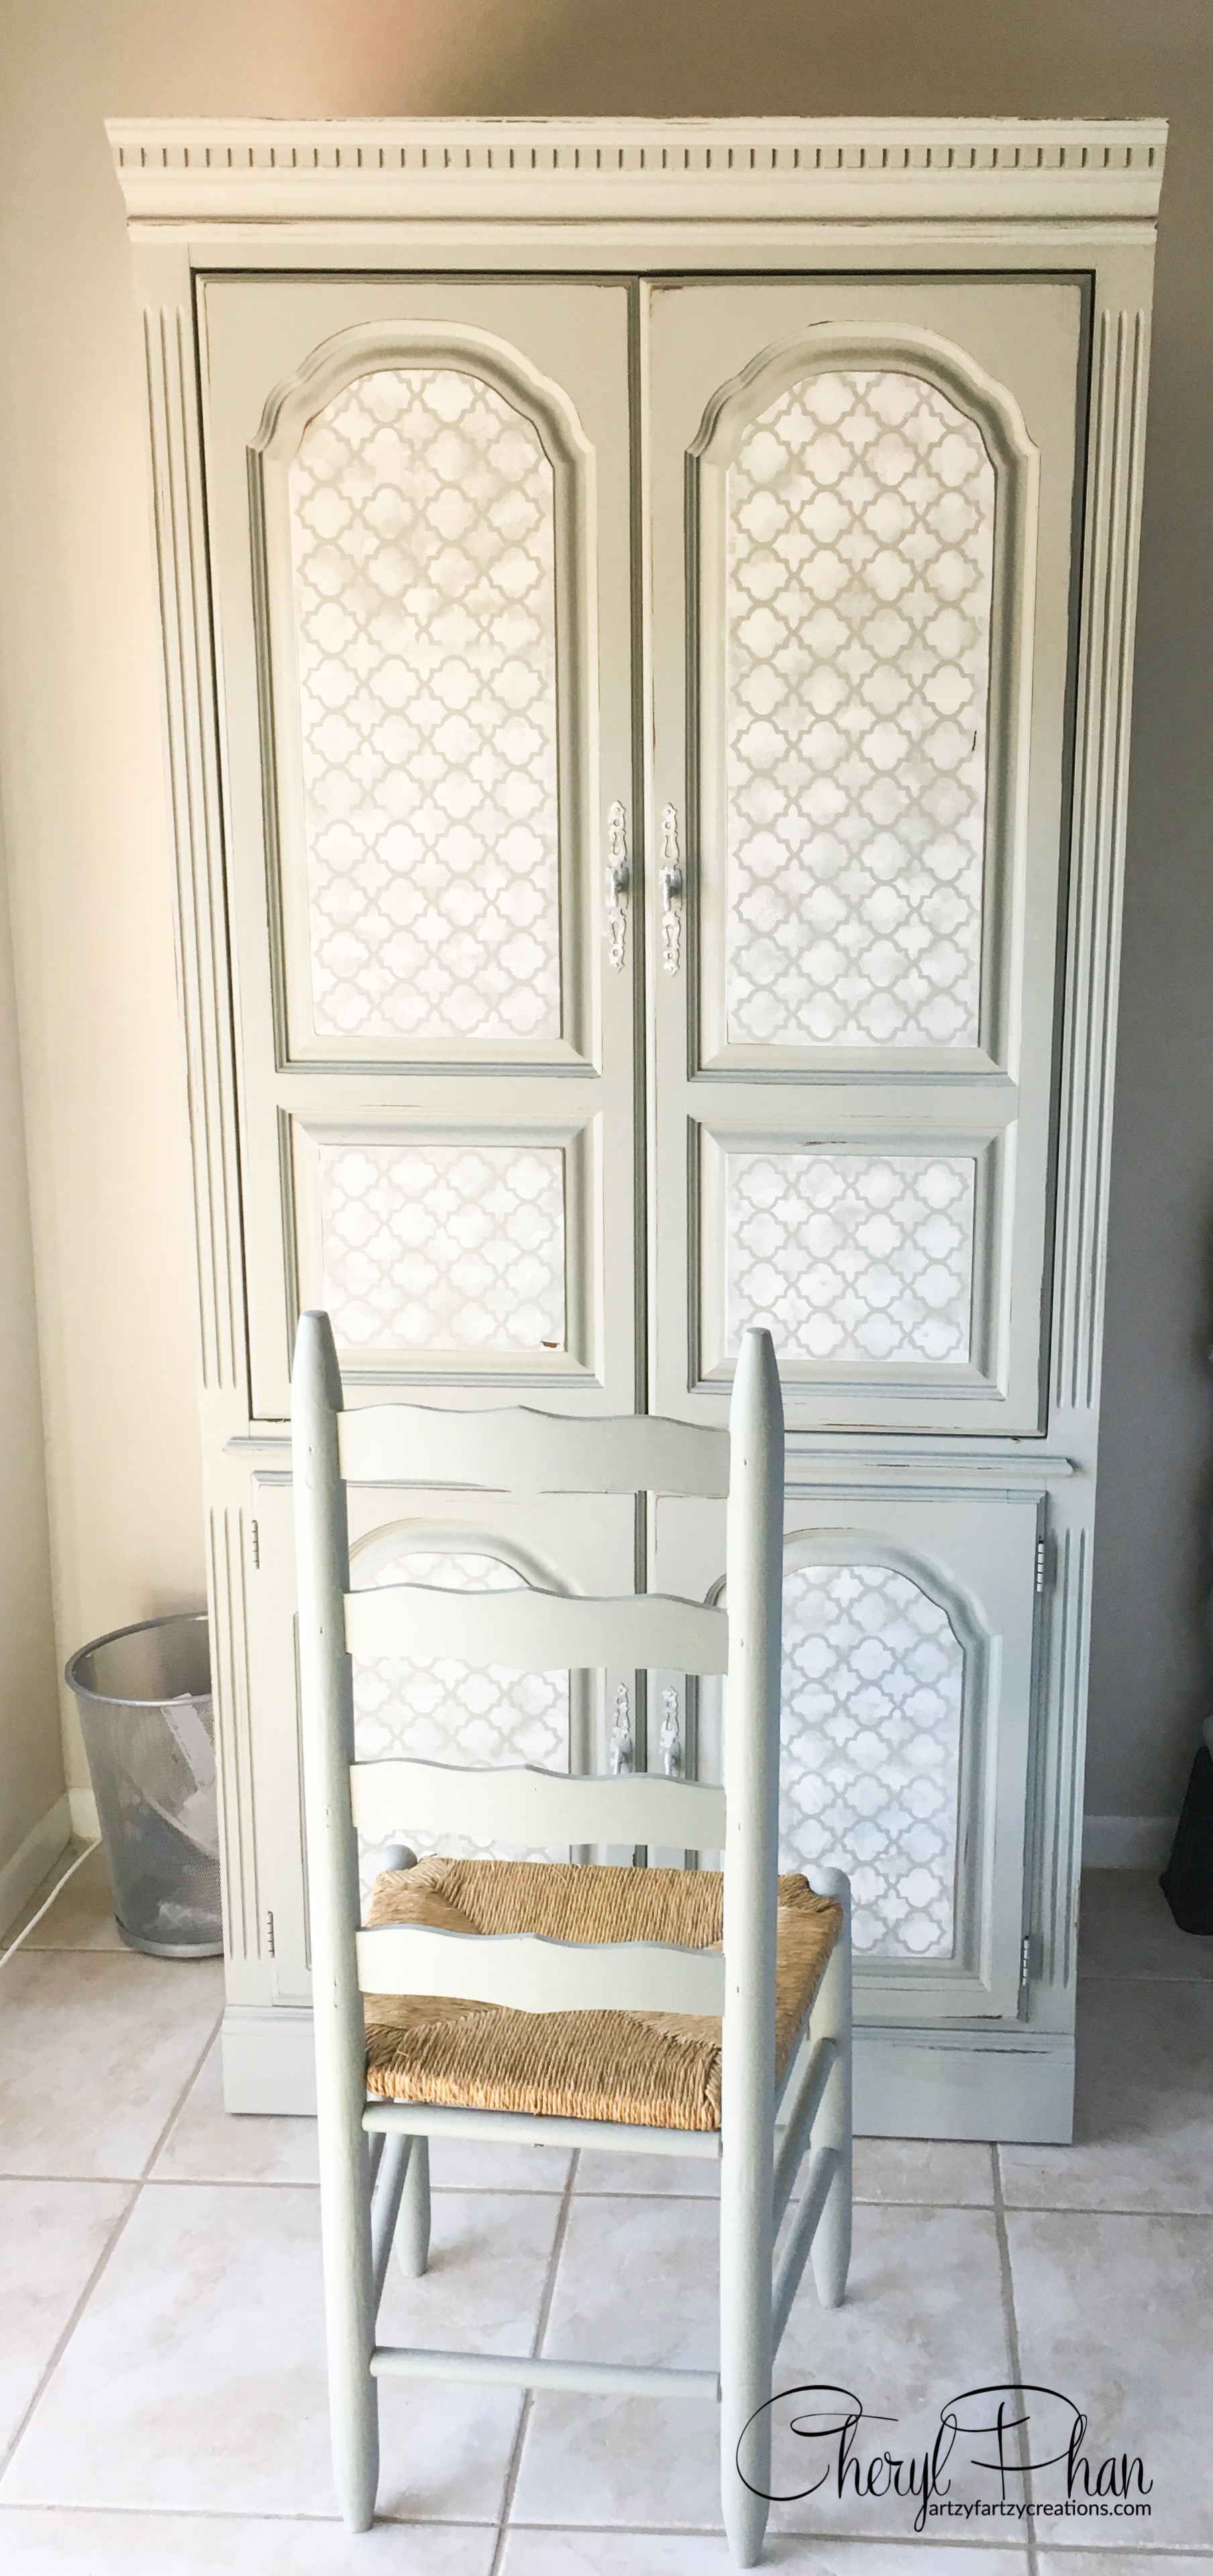 Office in an Armoire by Cheryl Phan